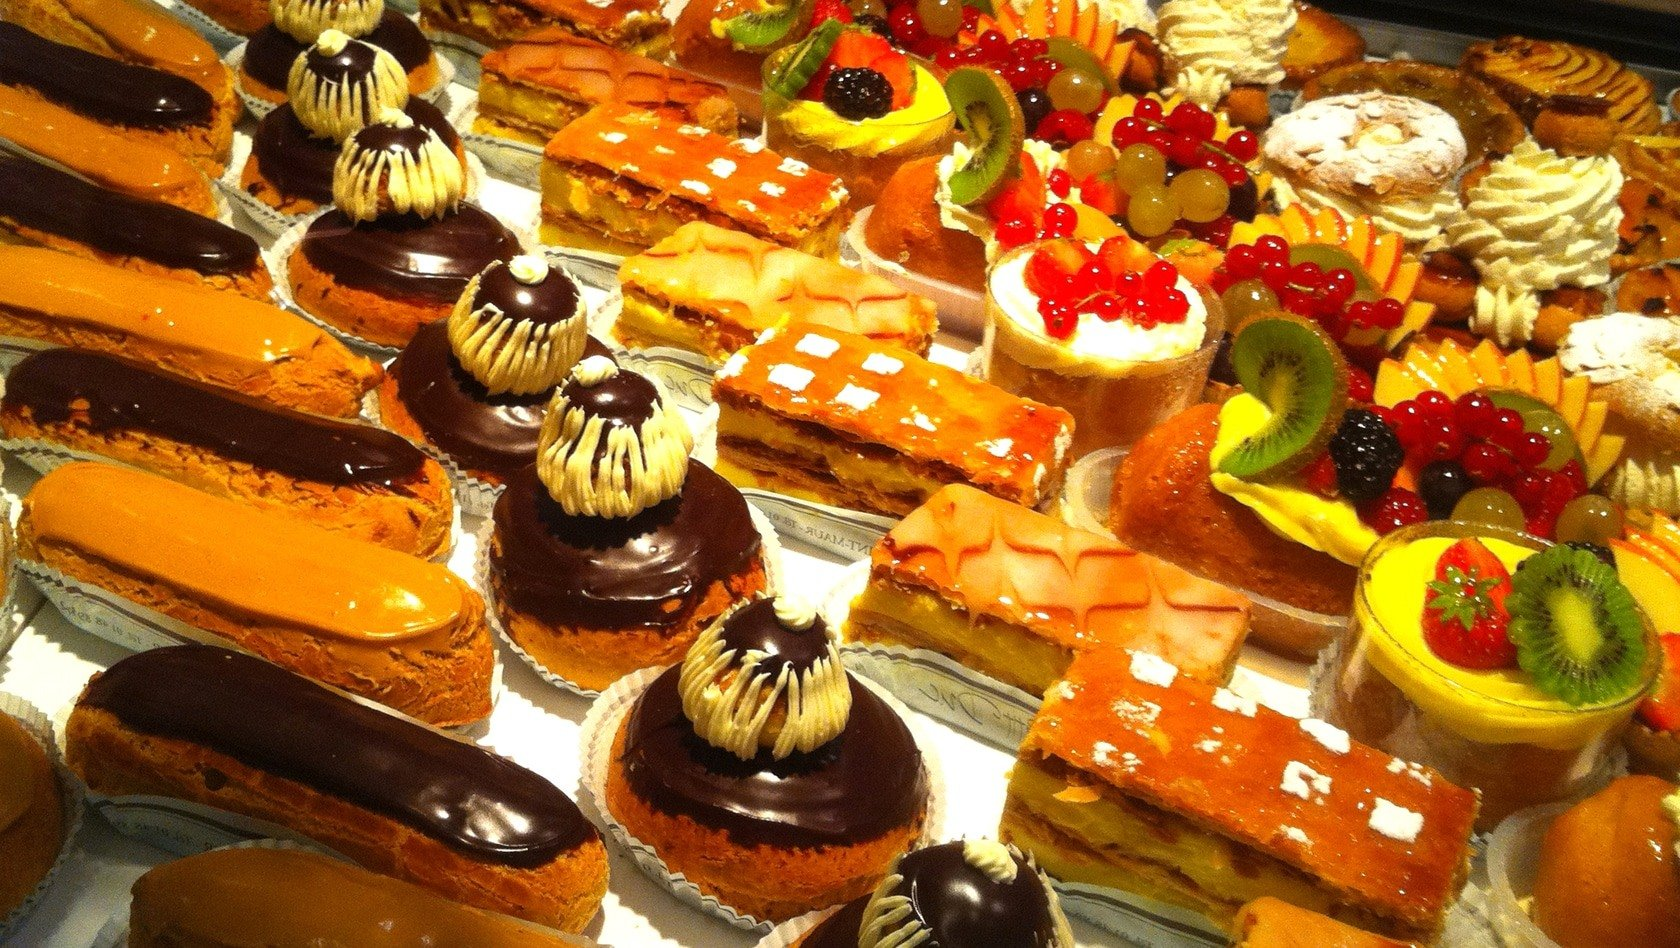 Top 10 Phuket Bakeries | The Thaiger